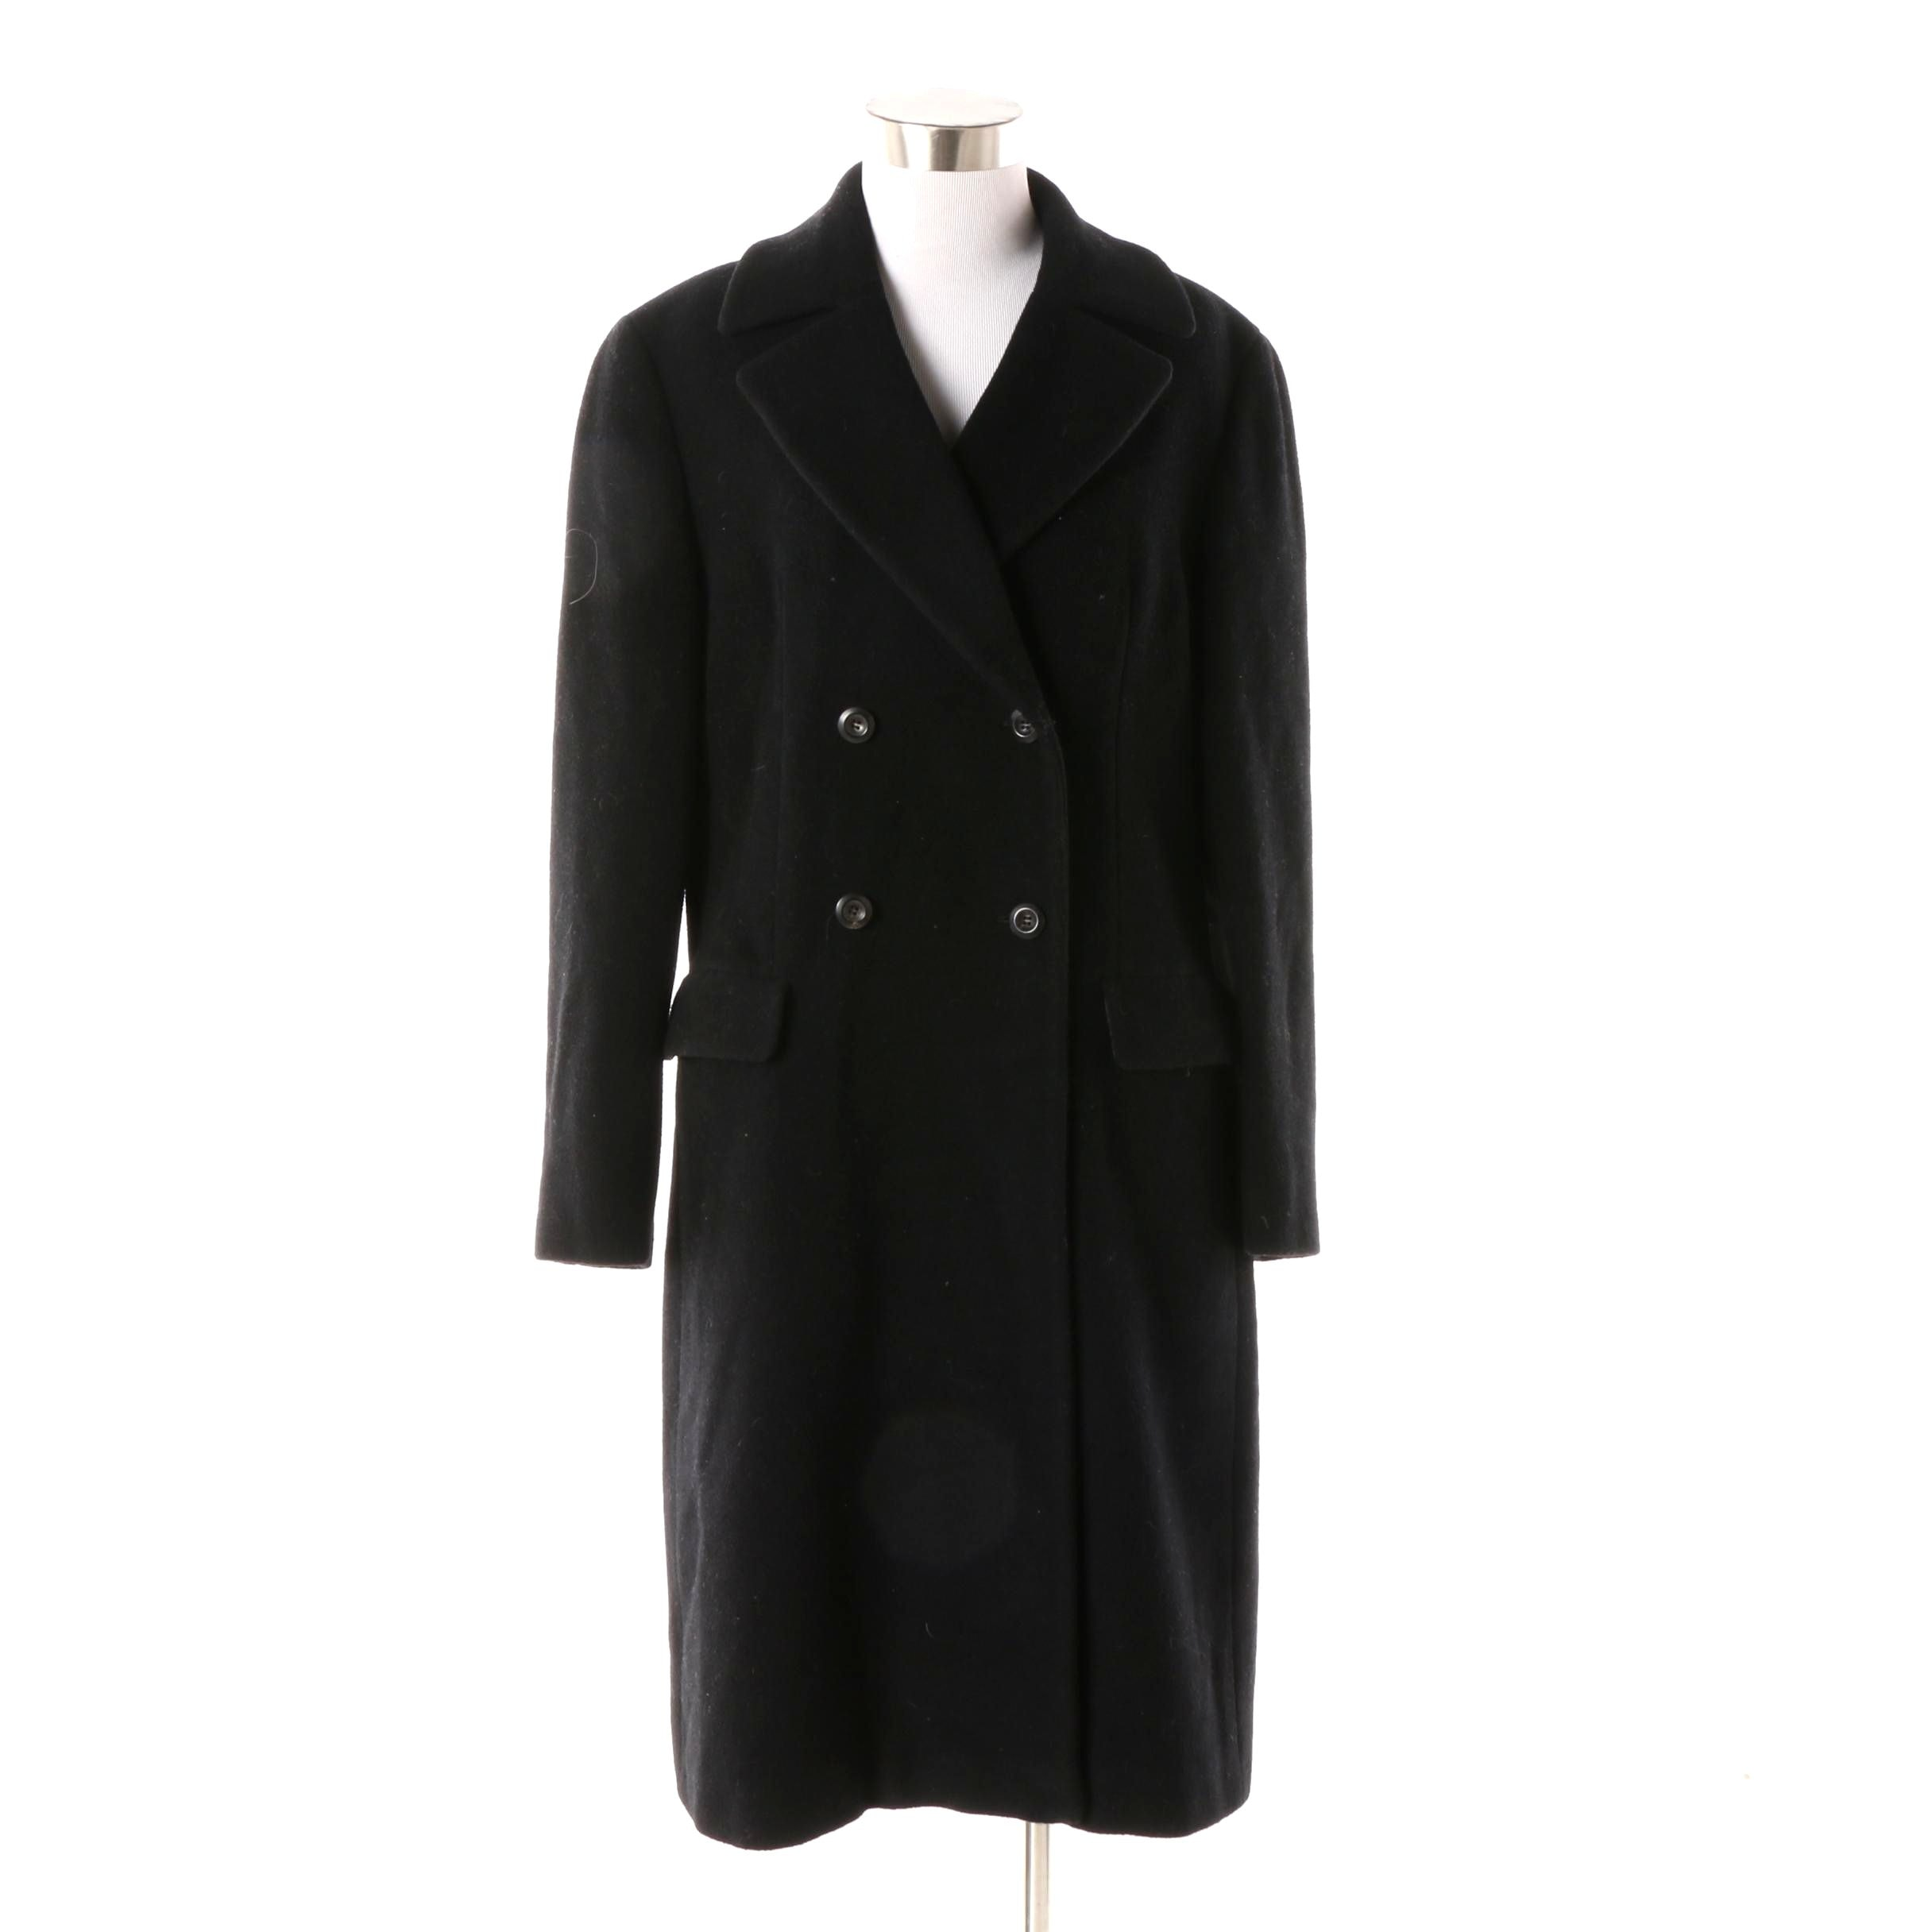 Women's Circa 1990s Giorgio Armani Double-Breasted Black Wool Coat